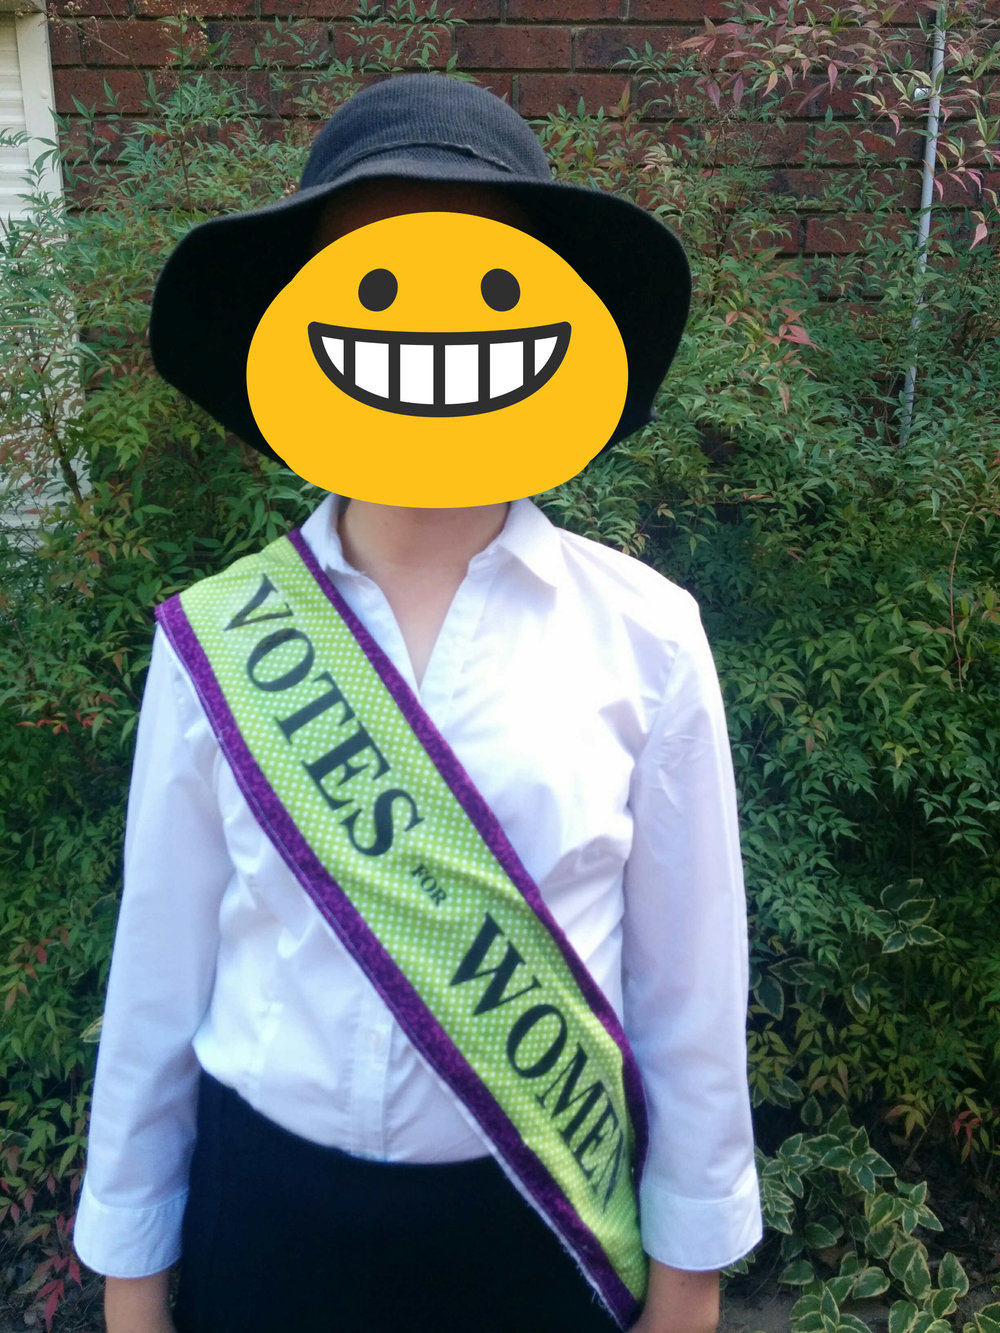 Miss 11 dress as Emmaline Pankhurst